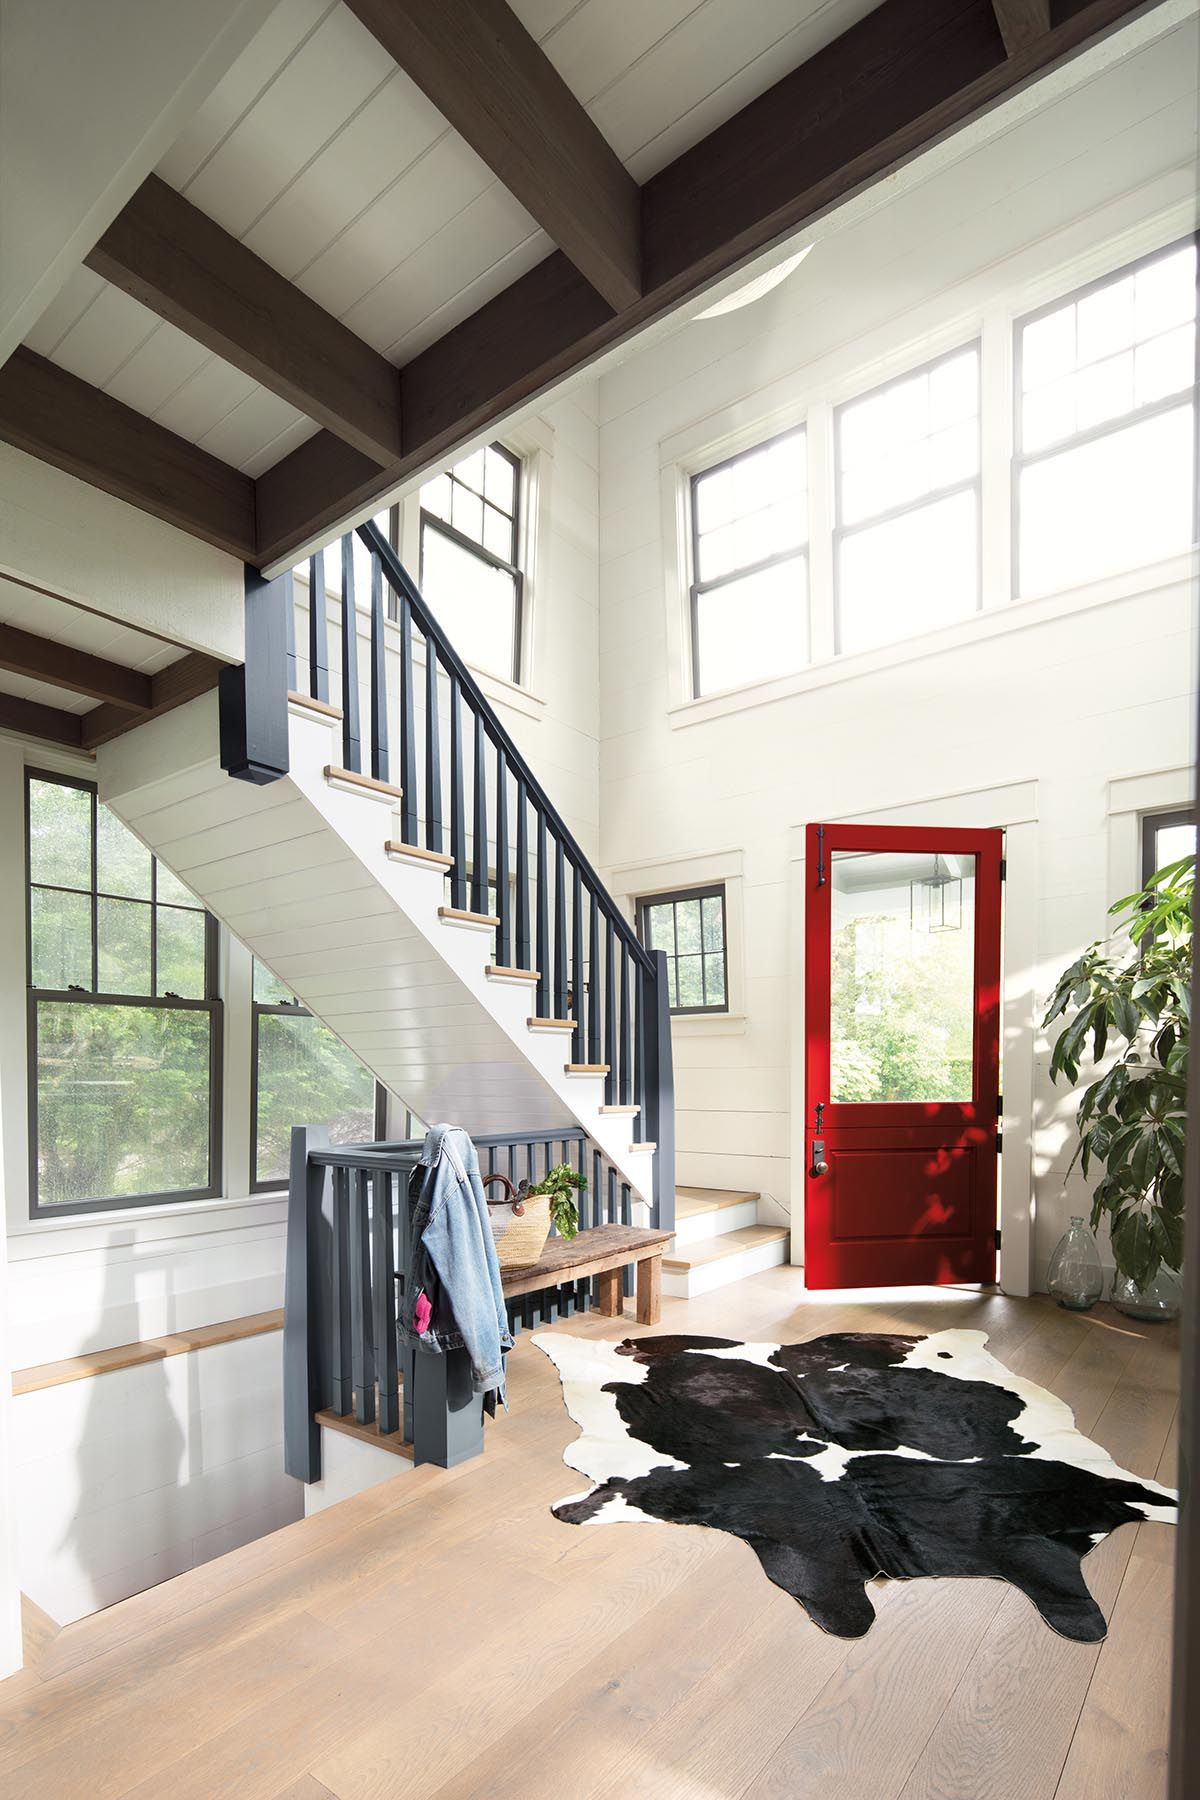 Benjamin Moore's 2018 Color of the Year Is Red Hot